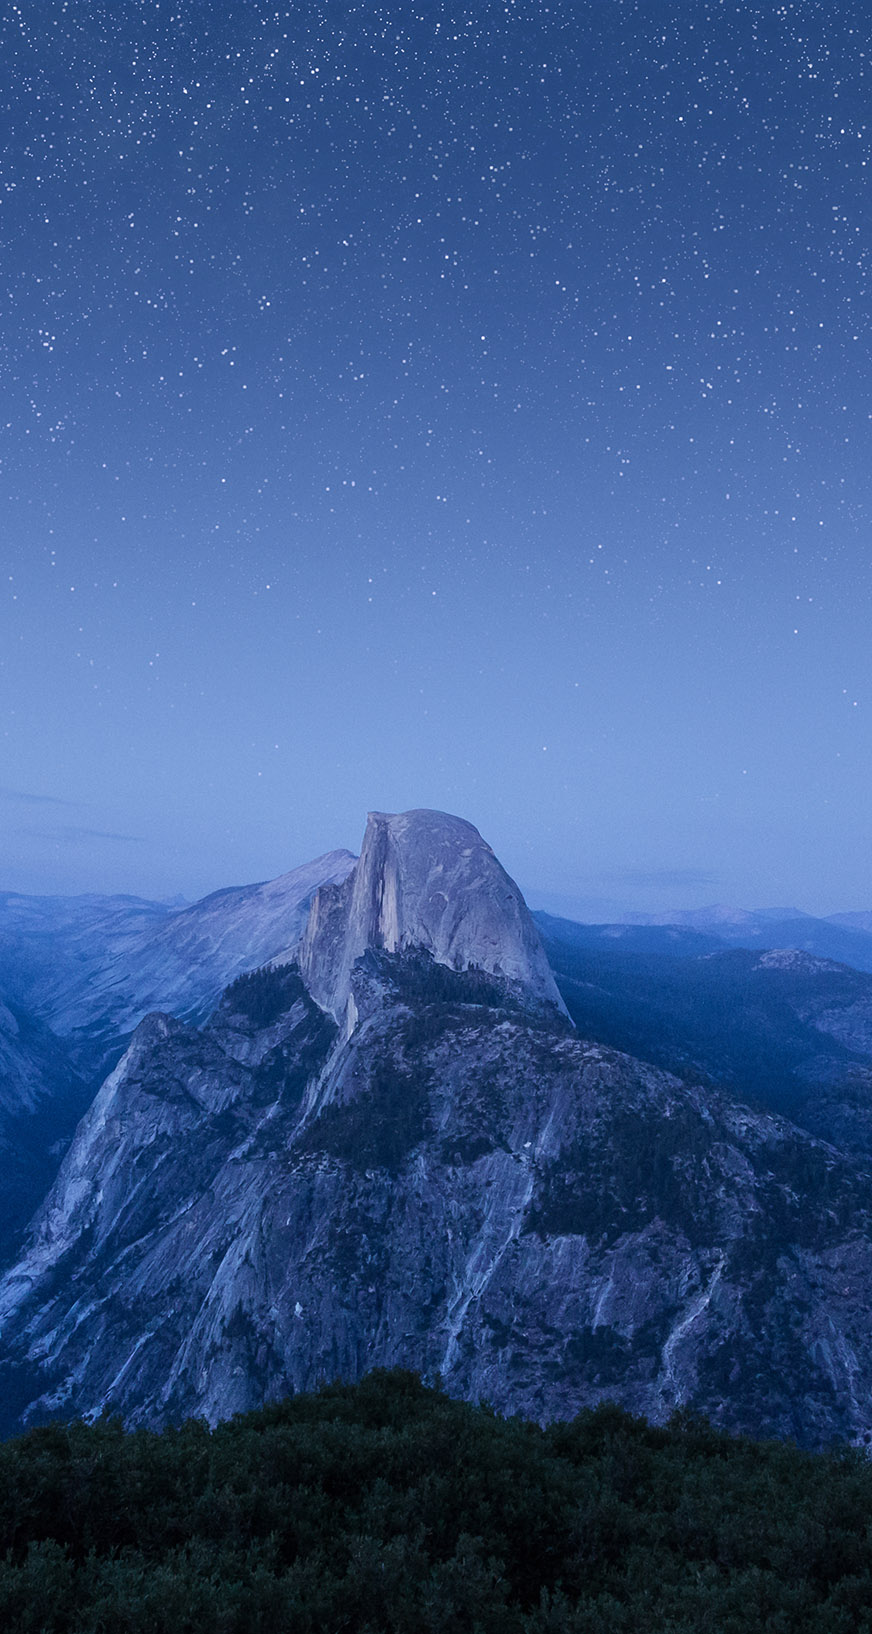 Os X Mavericks Wallpaper Iphone Download The New El Capitan Wallpapers For Os X And Ios